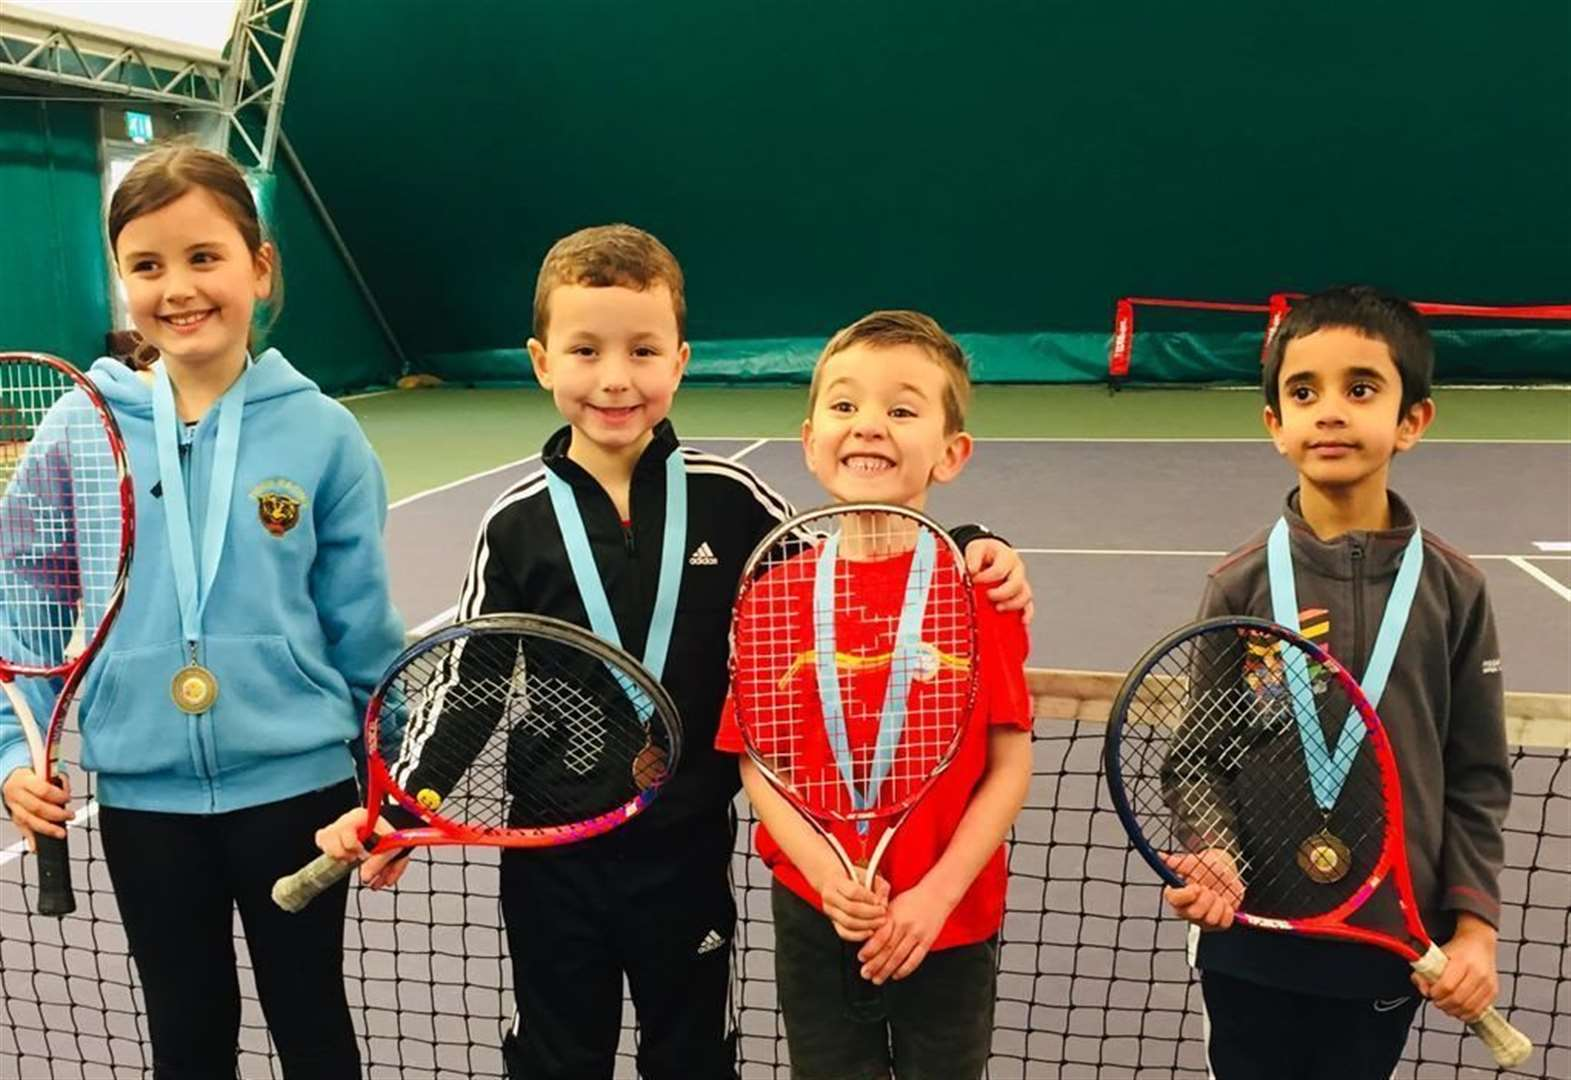 Tennis: Academy youngsters take gold at Peterborough